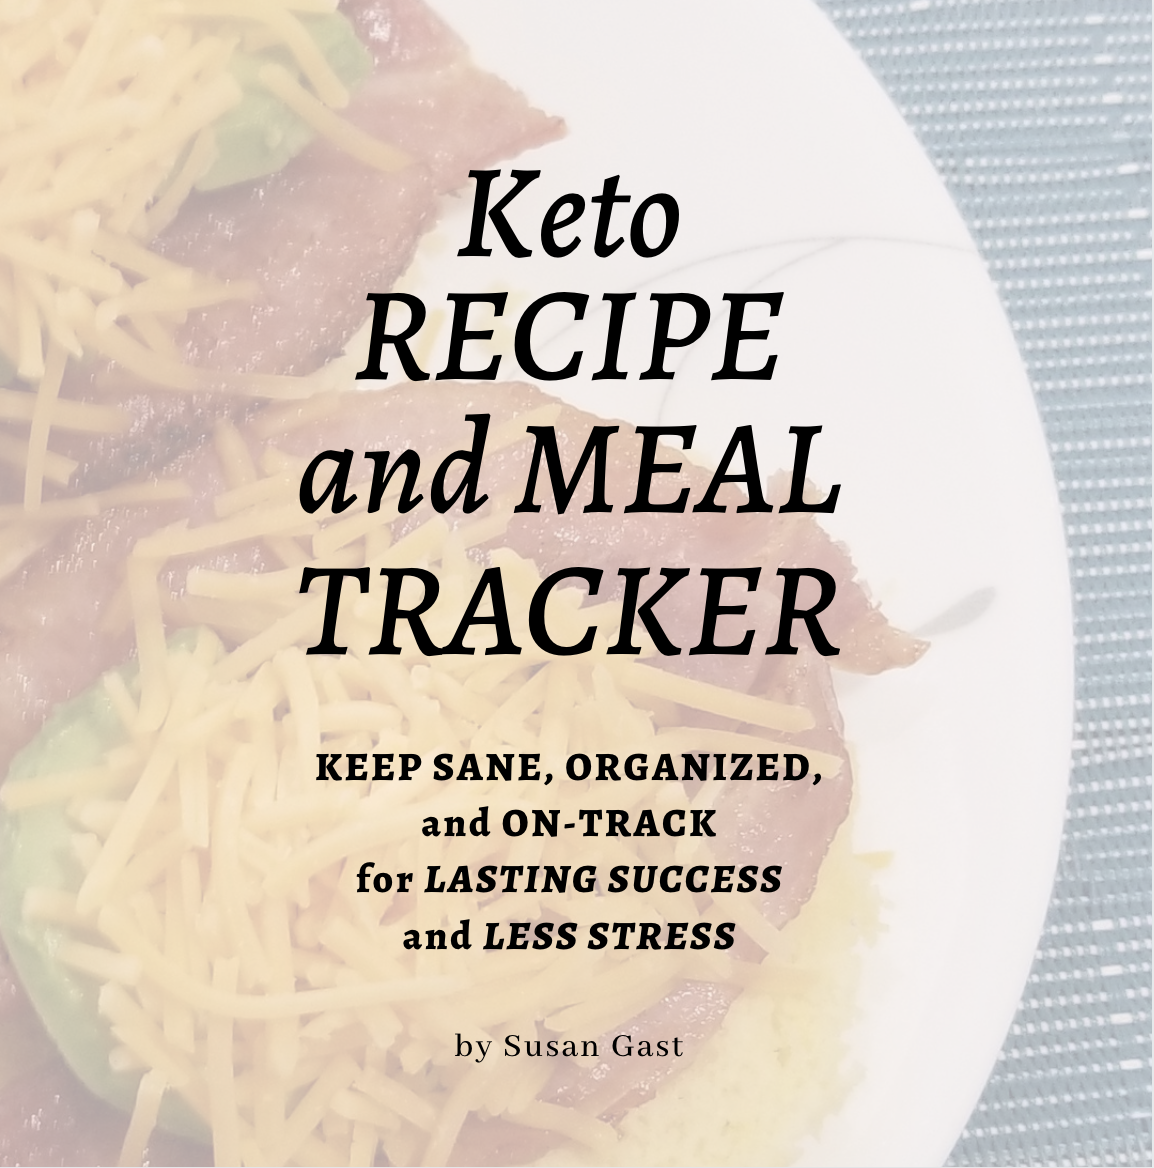 Keto Recipe and Meal Tracker